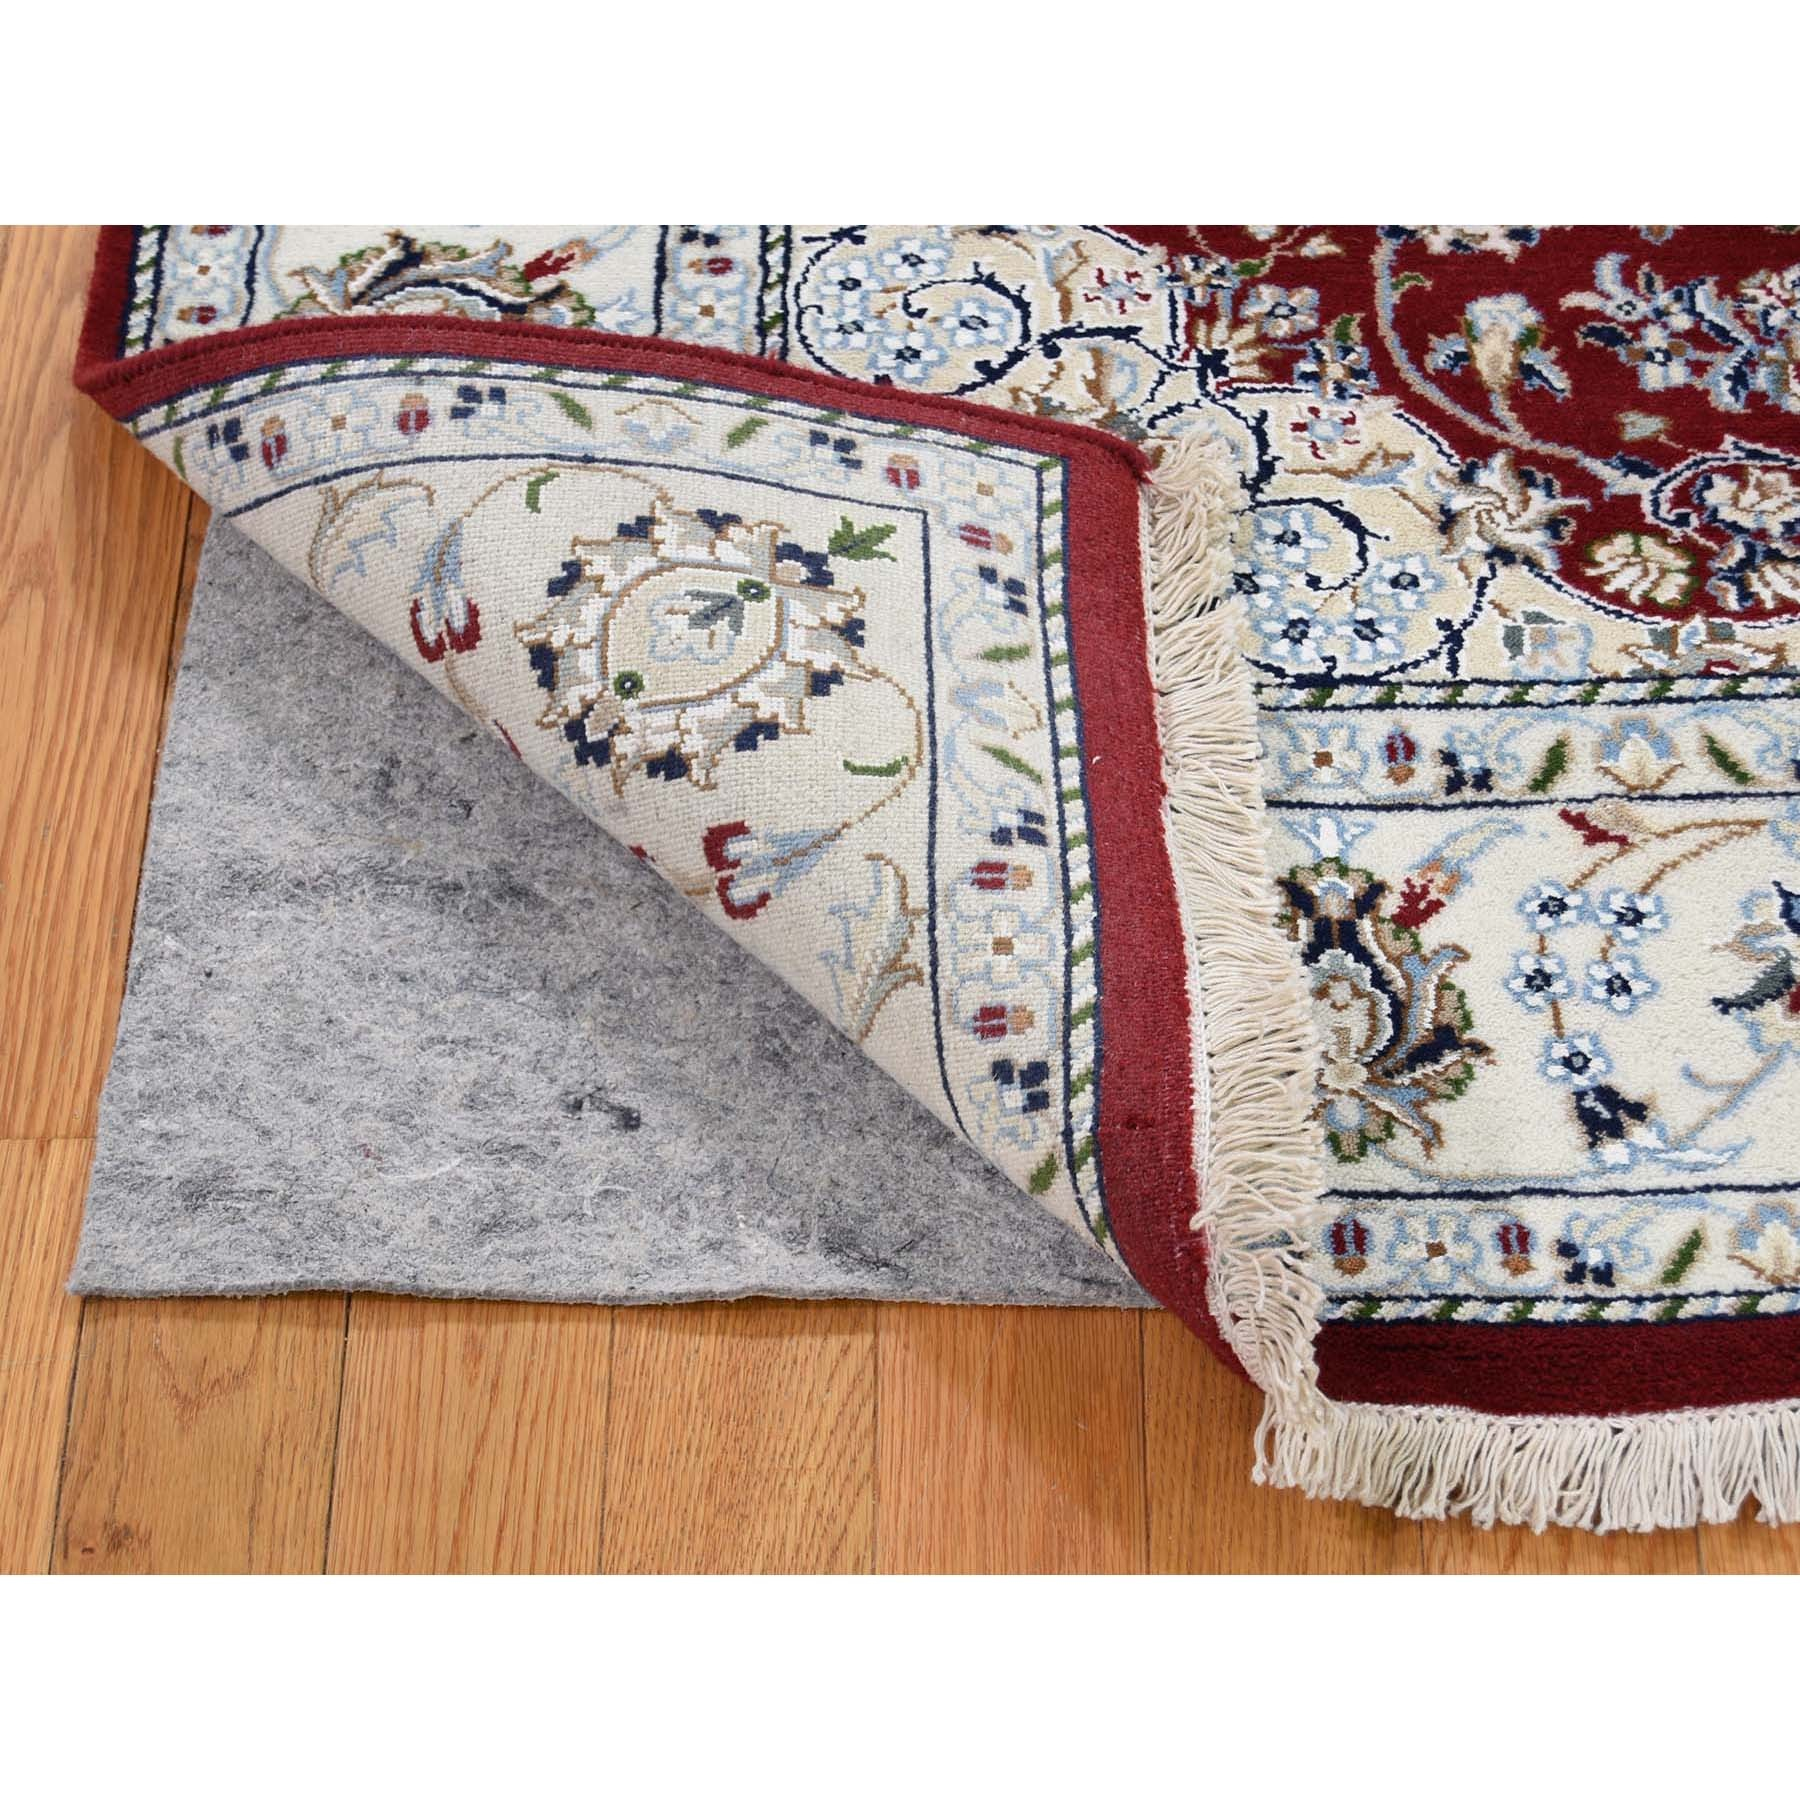 6-x6- Red Square Nain Wool And Silk 250 KPSI Hand Knotted Oriental Rug